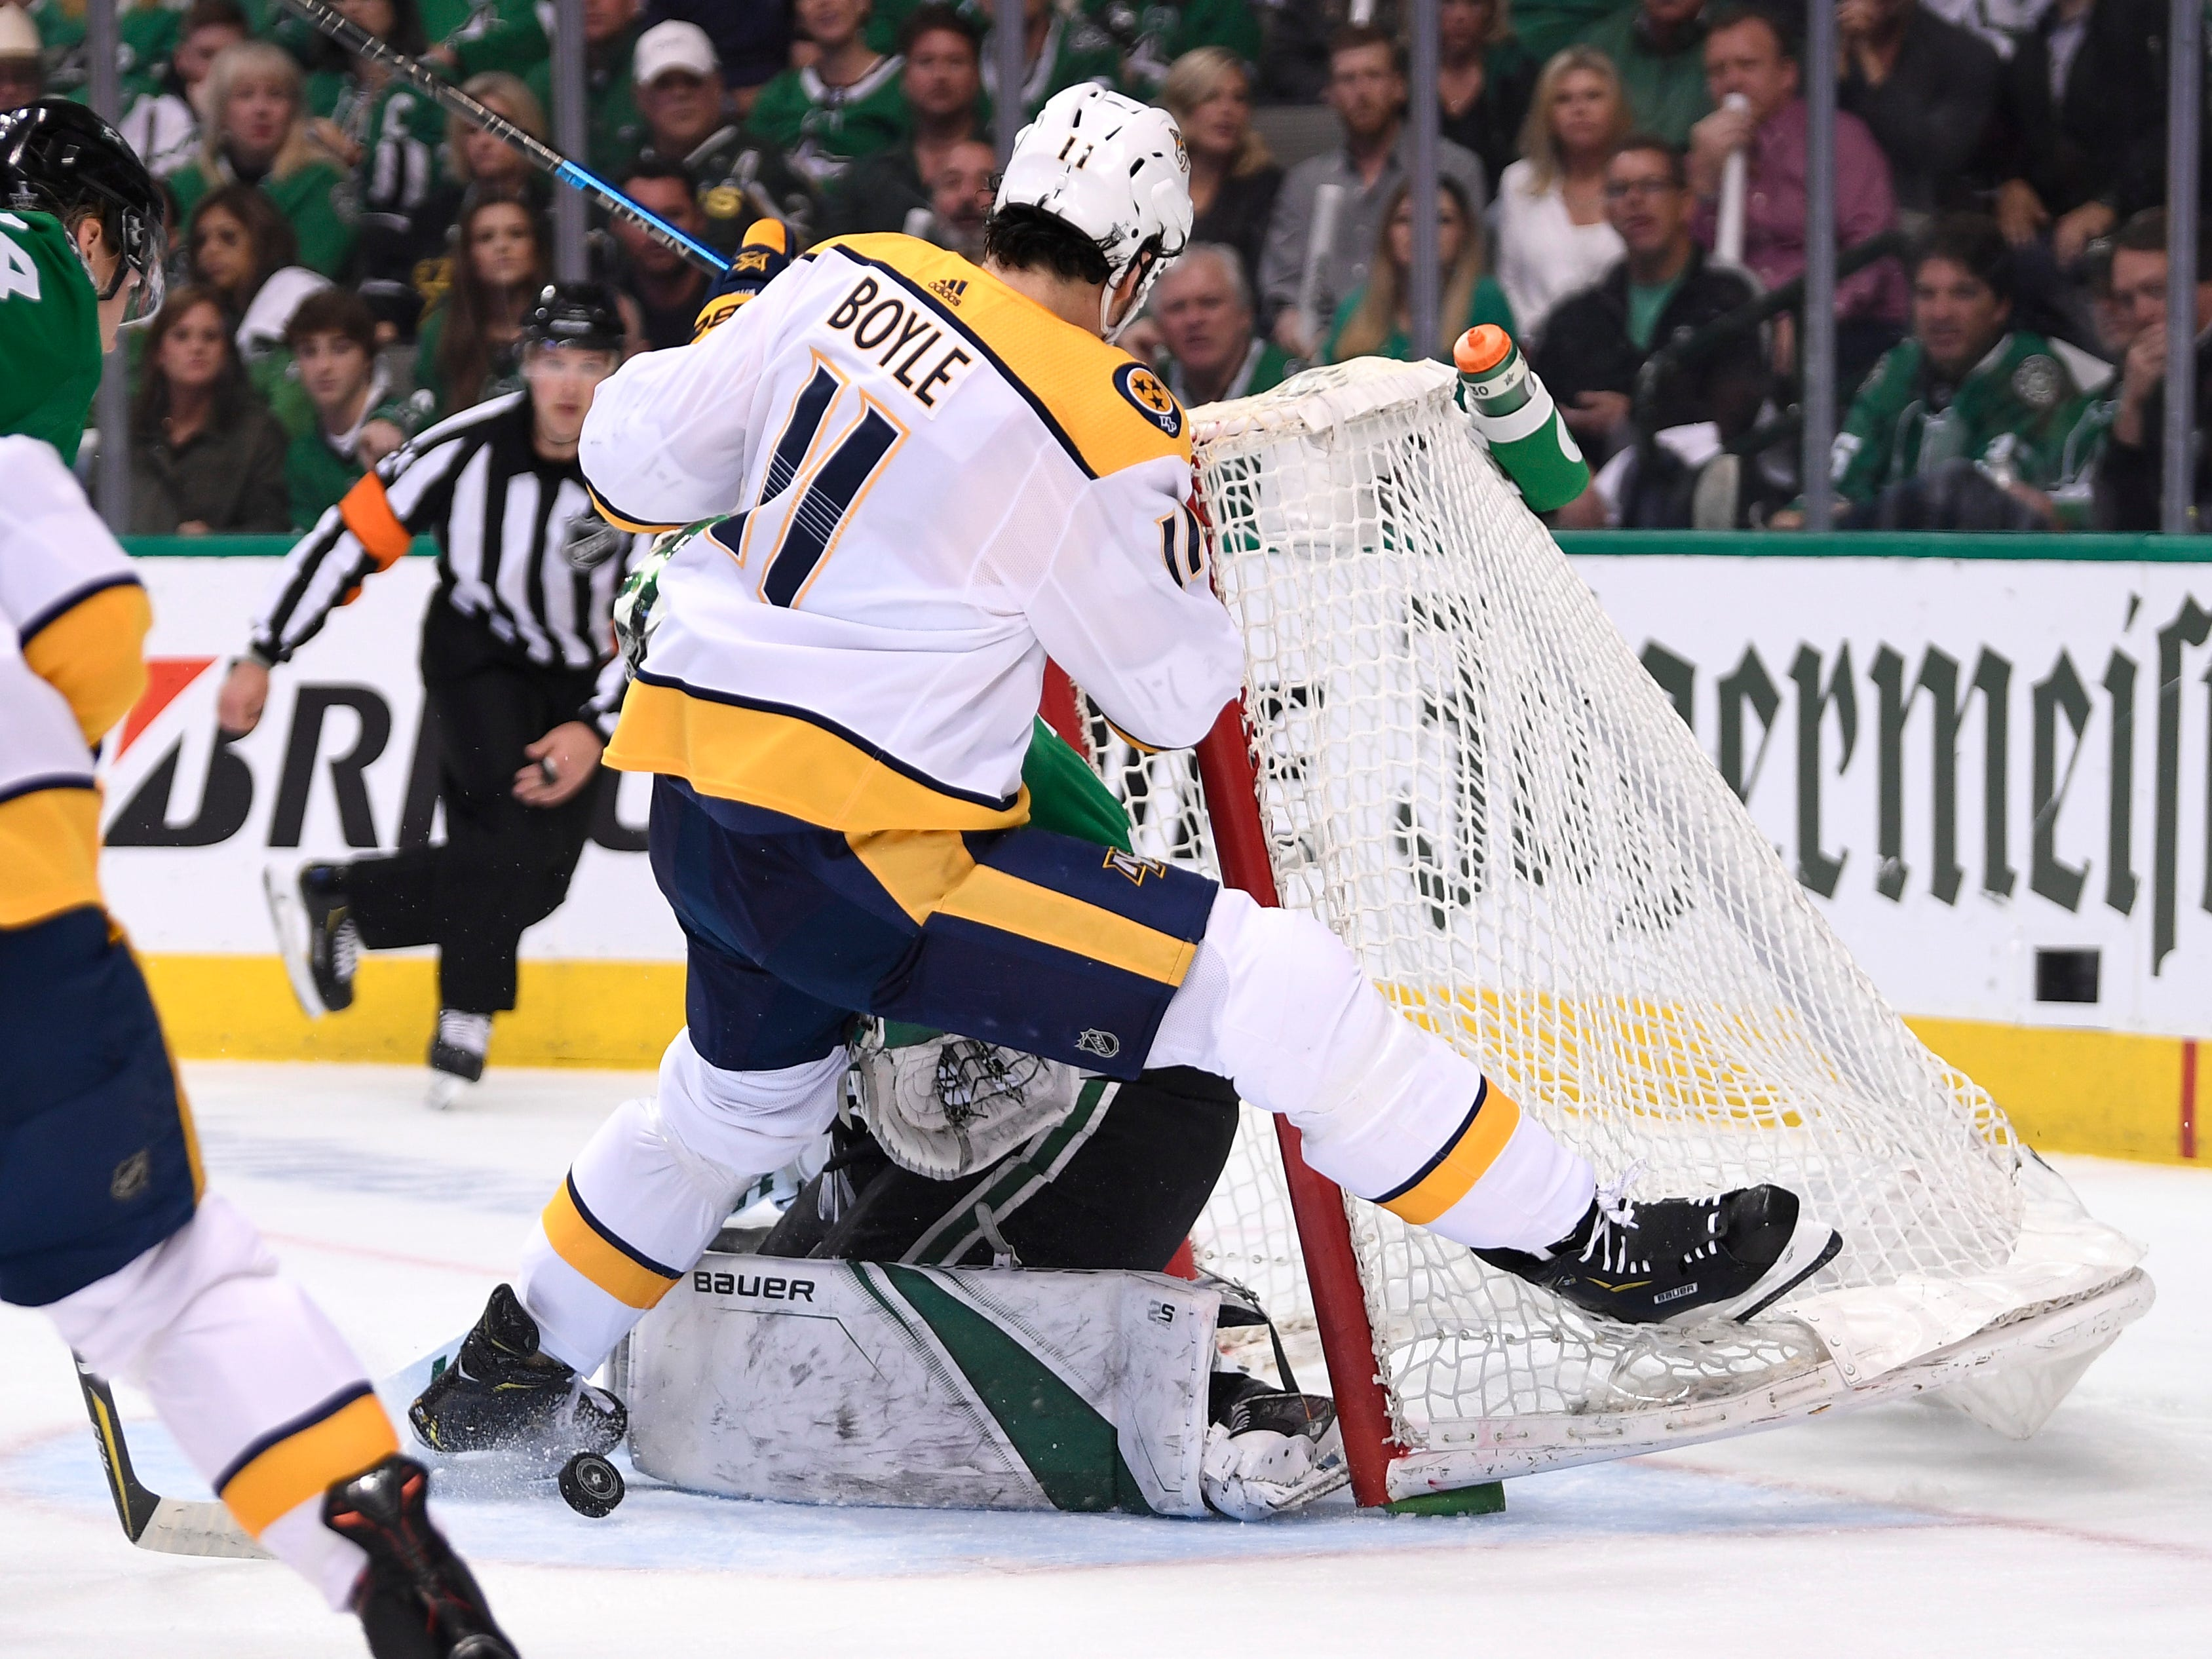 Nashville Predators center Brian Boyle (11) battles in front of Dallas Stars goaltender Ben Bishop (30) as the net comes off during the first period of the divisional semifinal game at the American Airlines Center in Dallas, Texas, Monday, April 22, 2019.